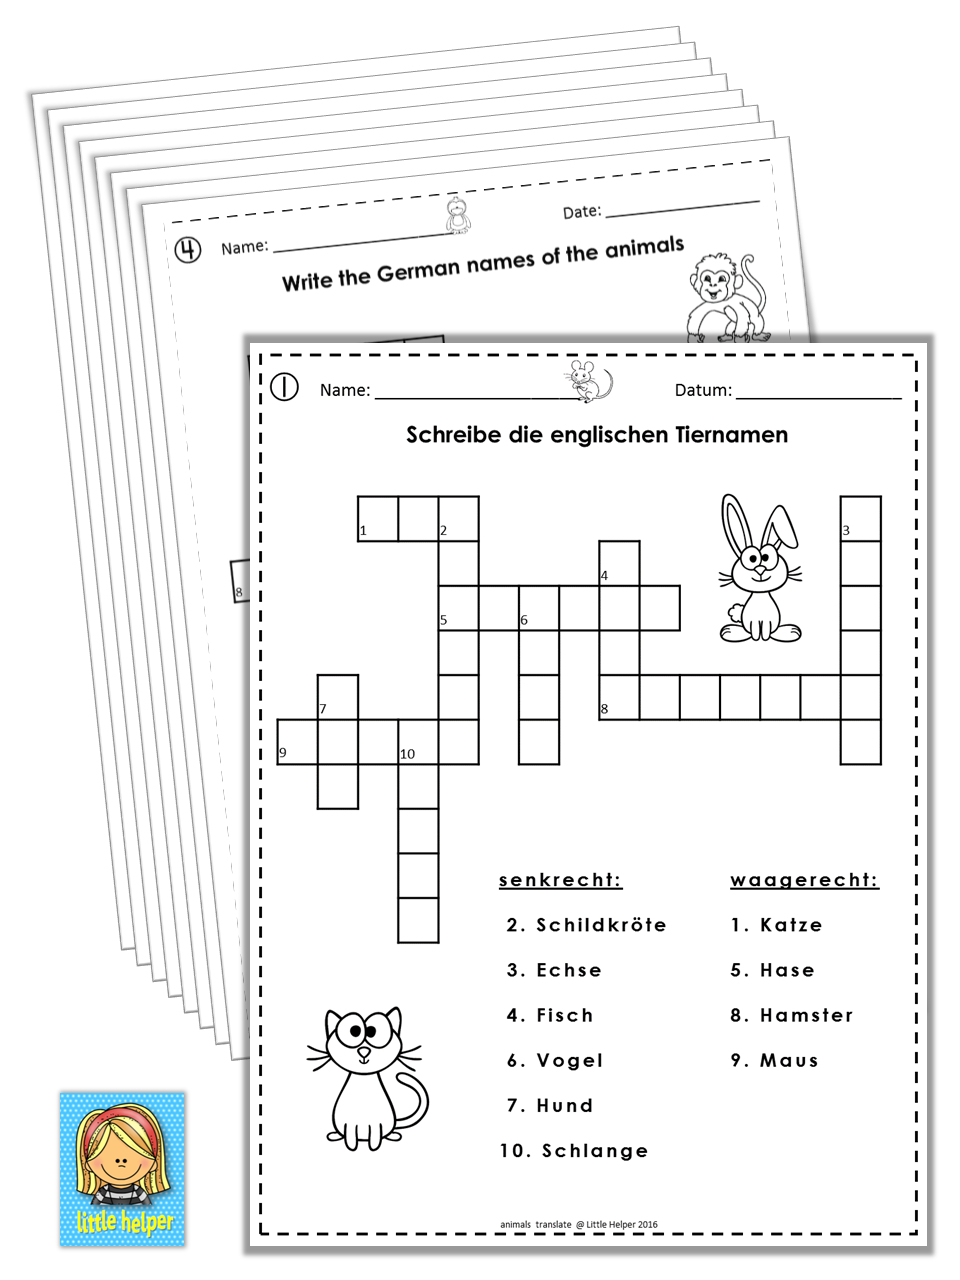 German/english Crossword Puzzles Tiere/animals | German Words - Printable German Crossword Puzzles